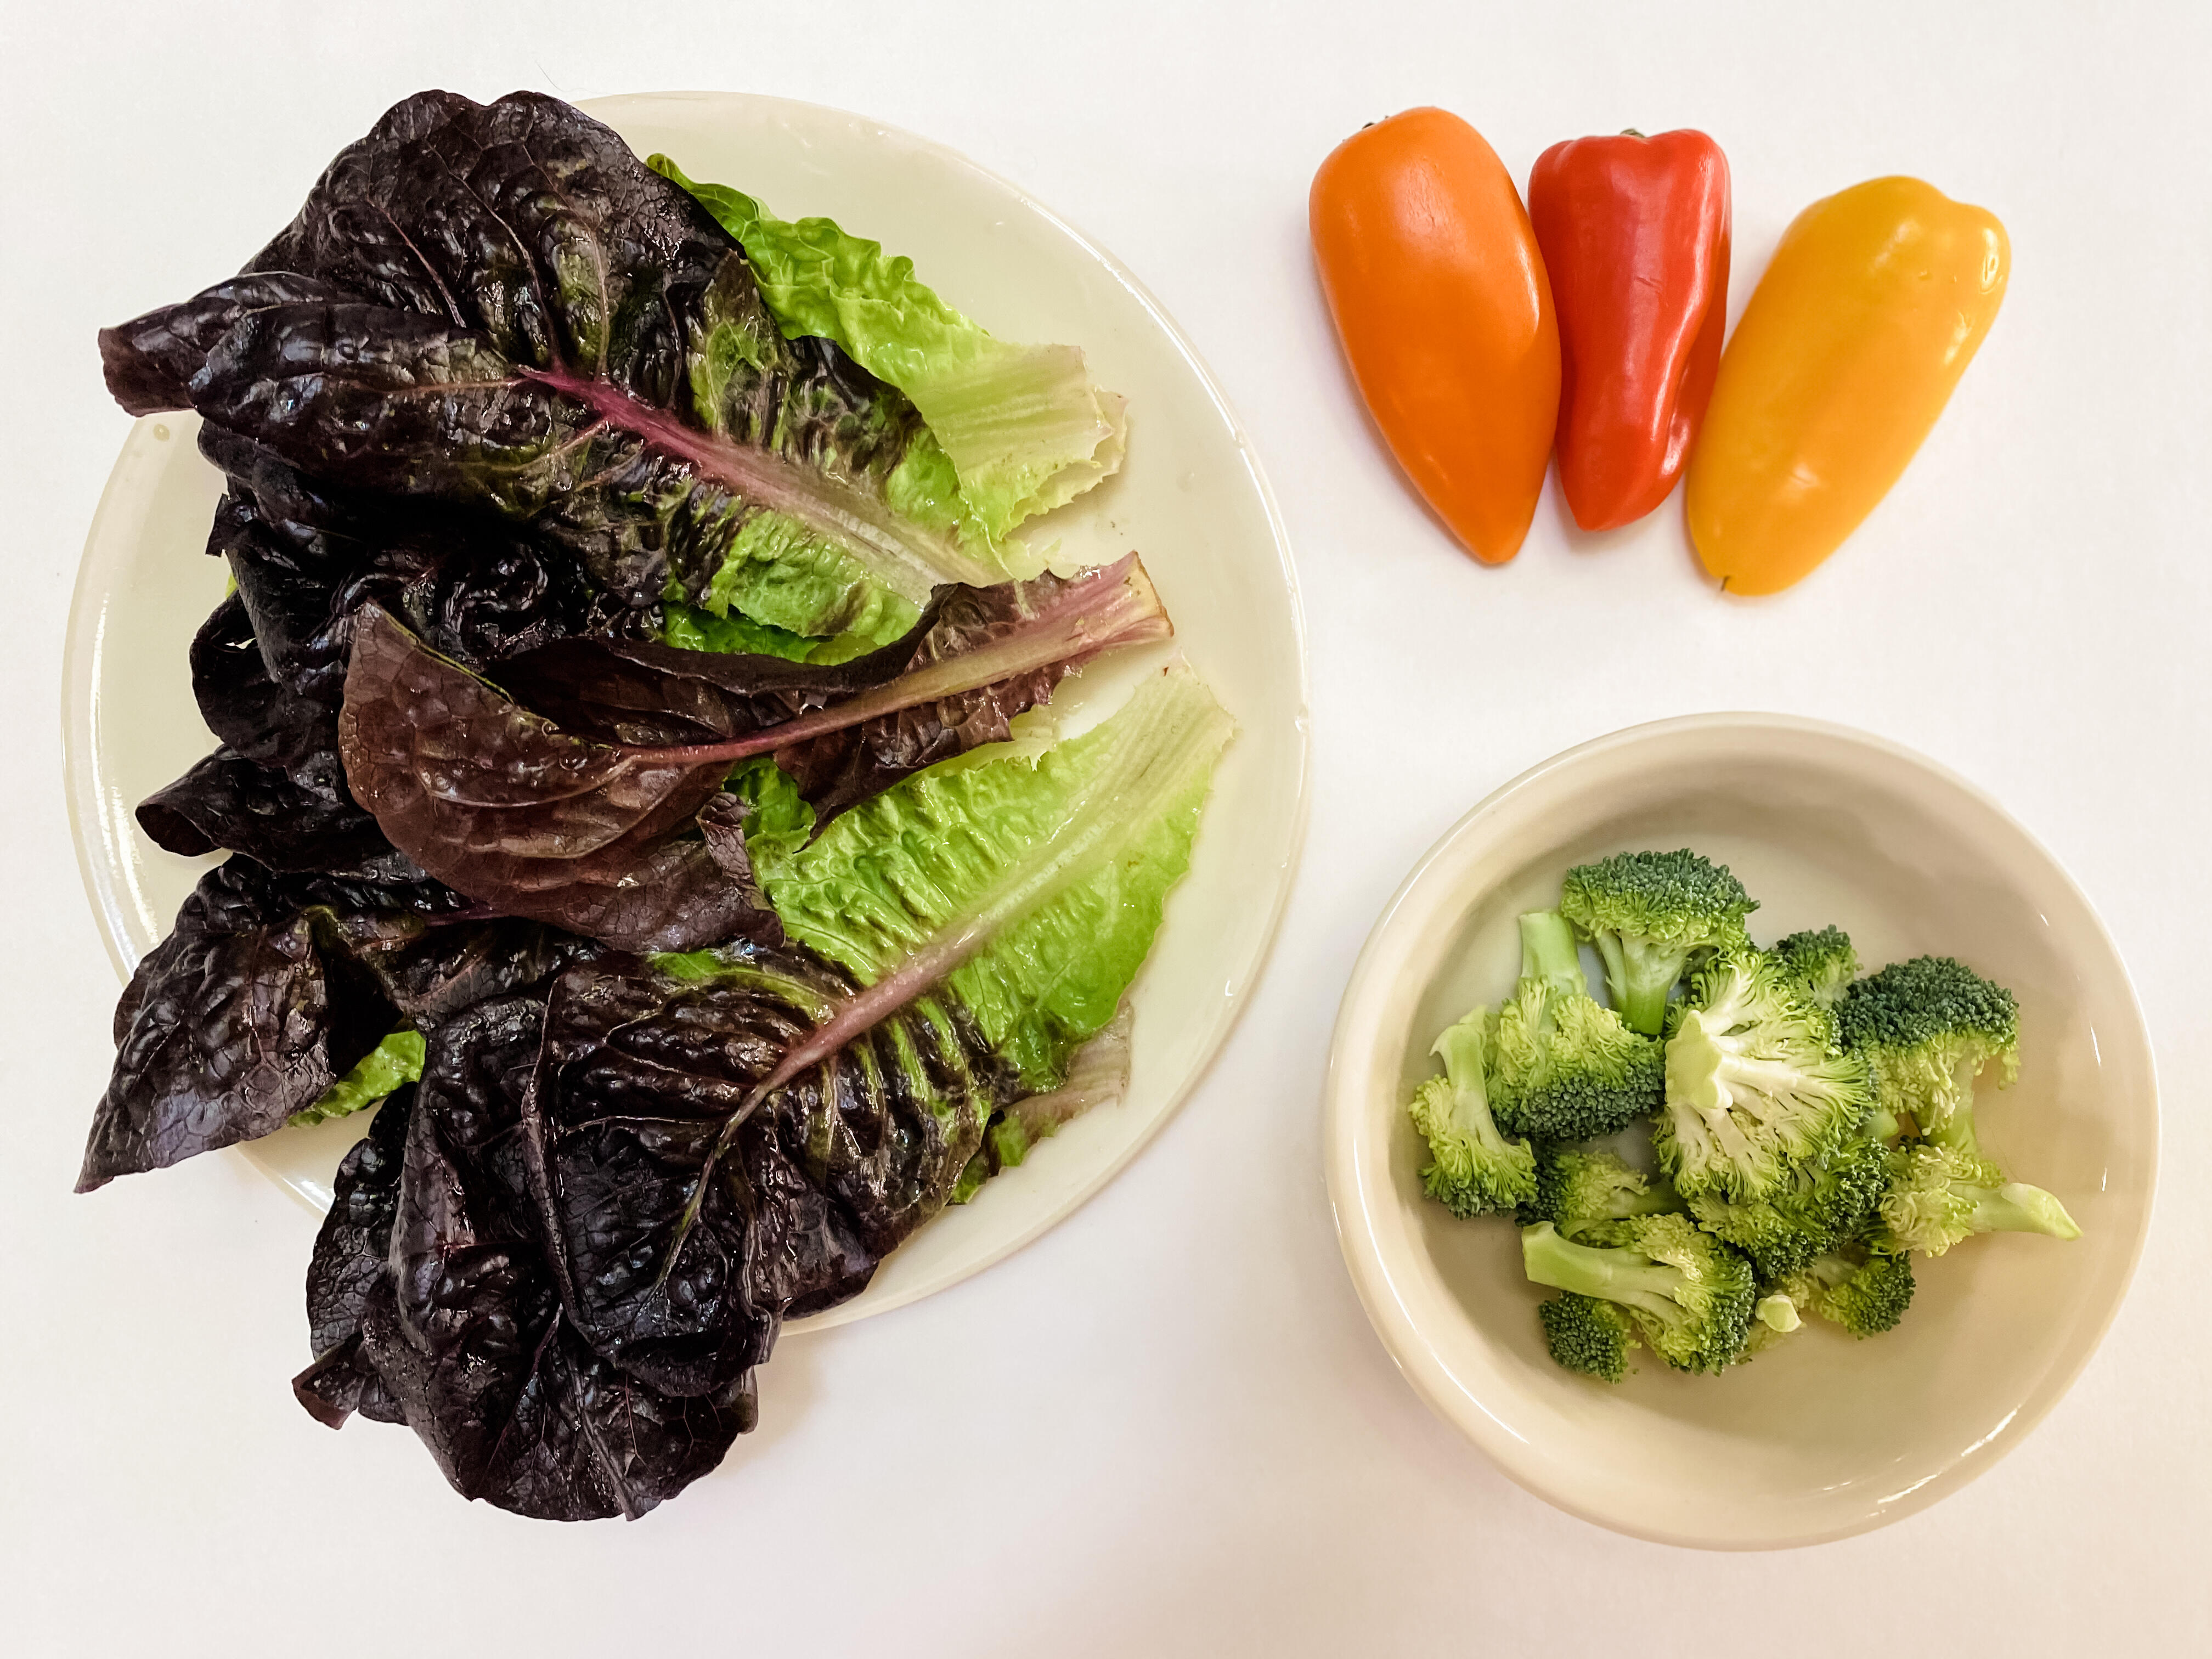 Five servings of vegetables: 3 cups of lettuce, half cup of broccoli, half cup of bell pepper